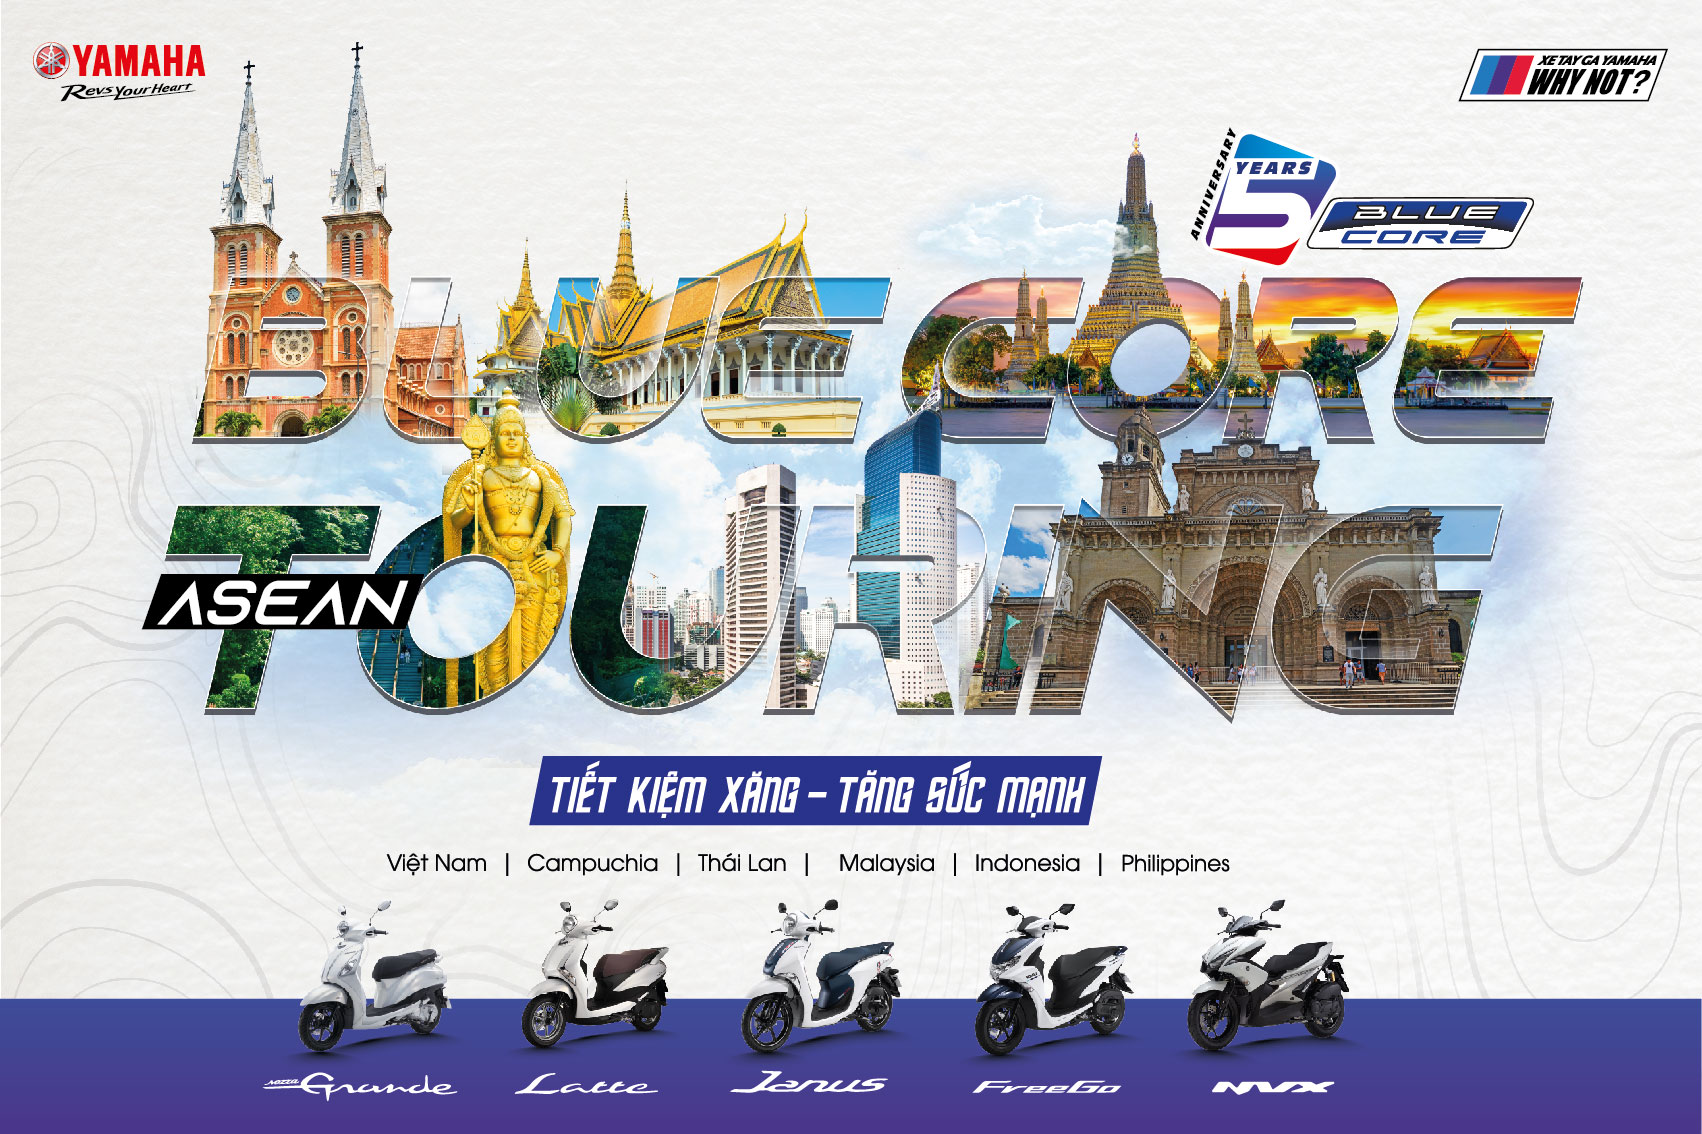 kv-asean-blue-core-touring.jpg